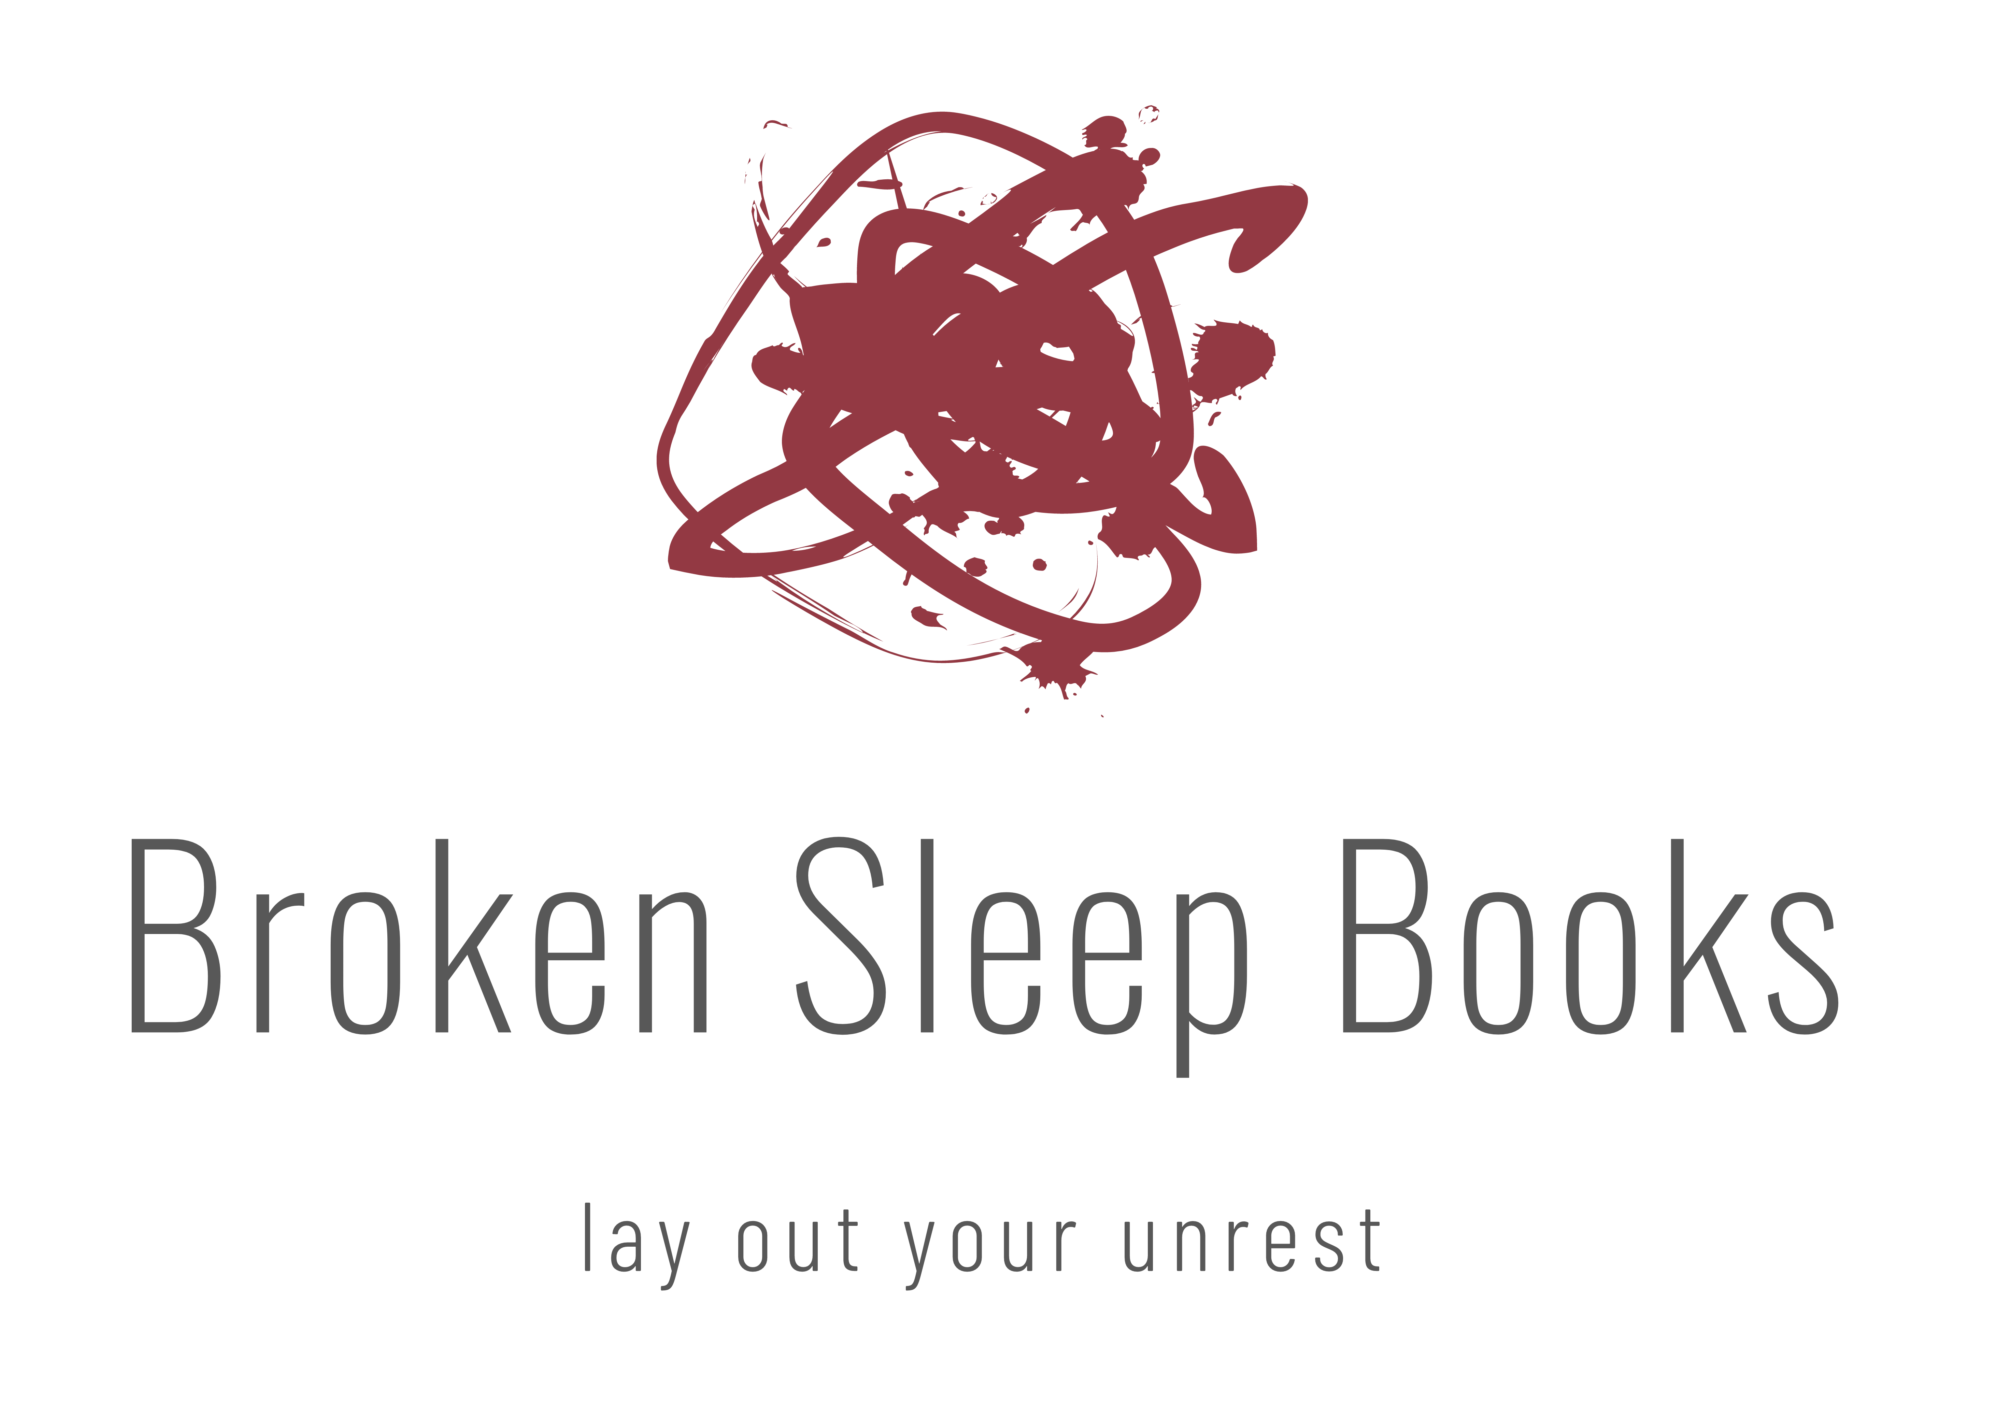 Broken Sleep Books